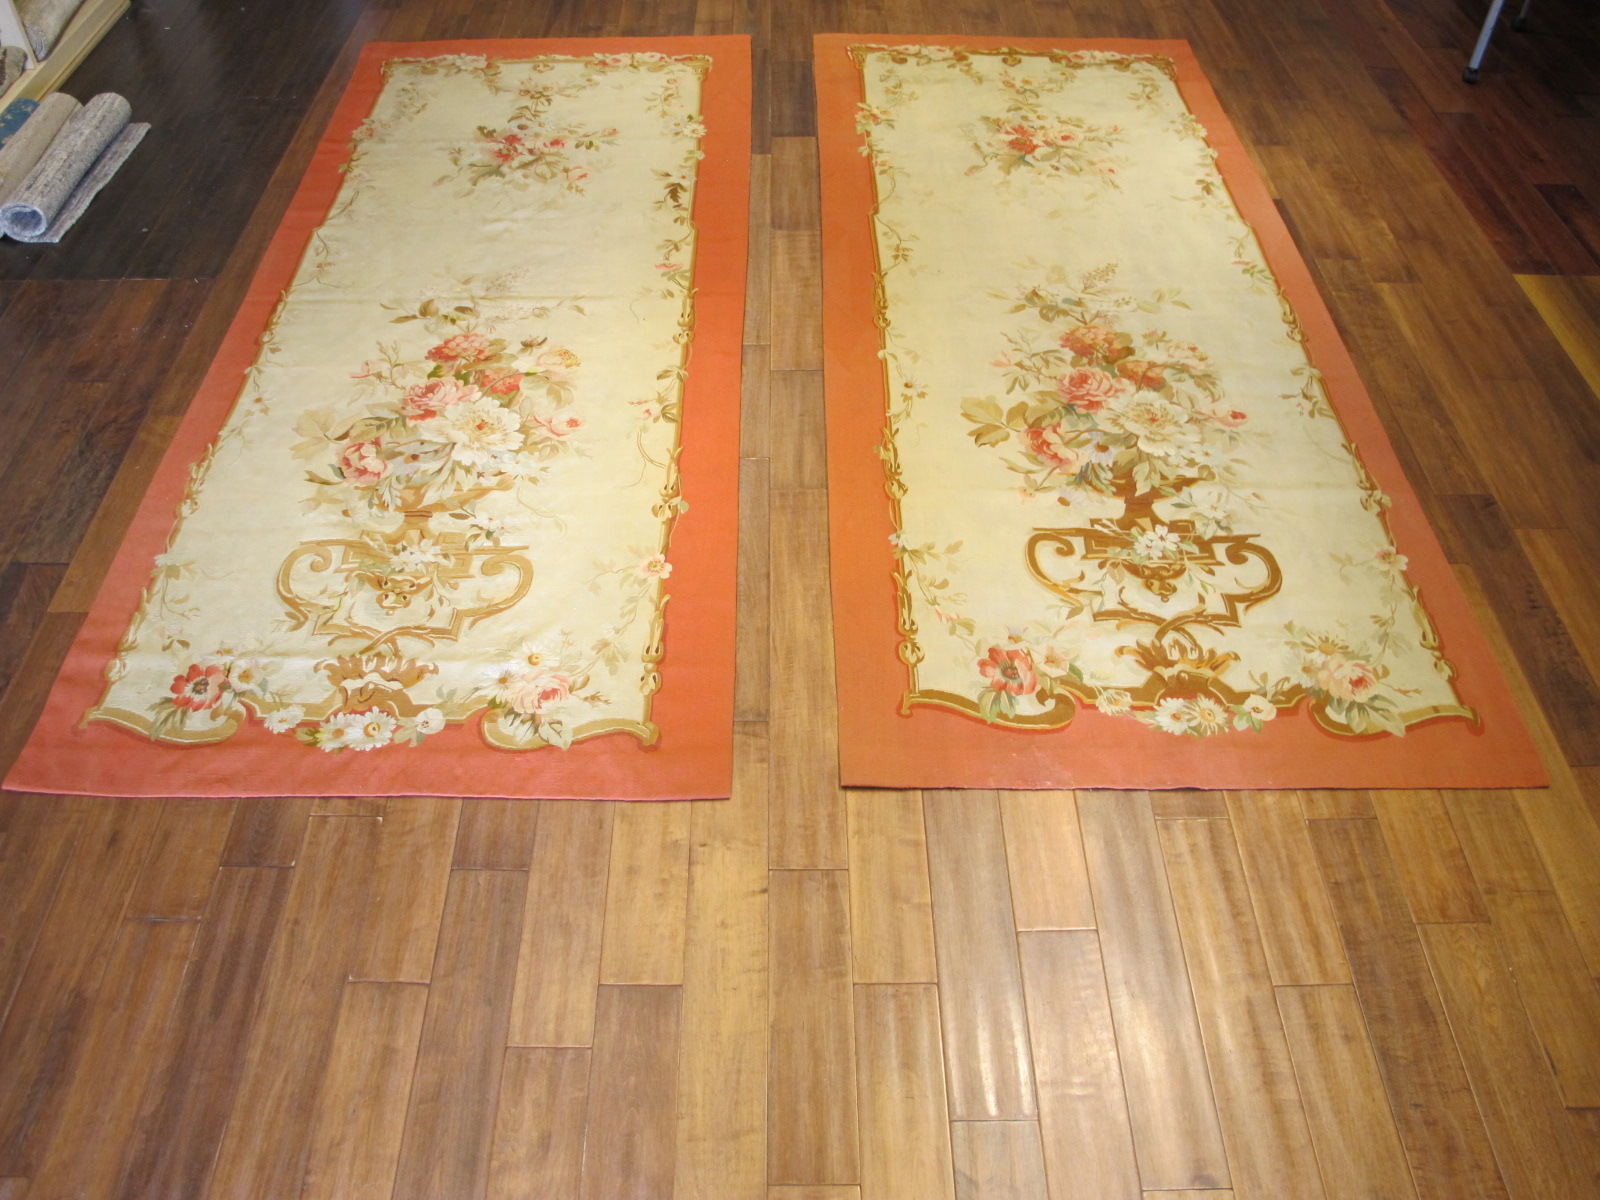 21455 Antique French Aubusson Entre Fenetre tapestry 4 x 9,10 (one of a pair) (1)